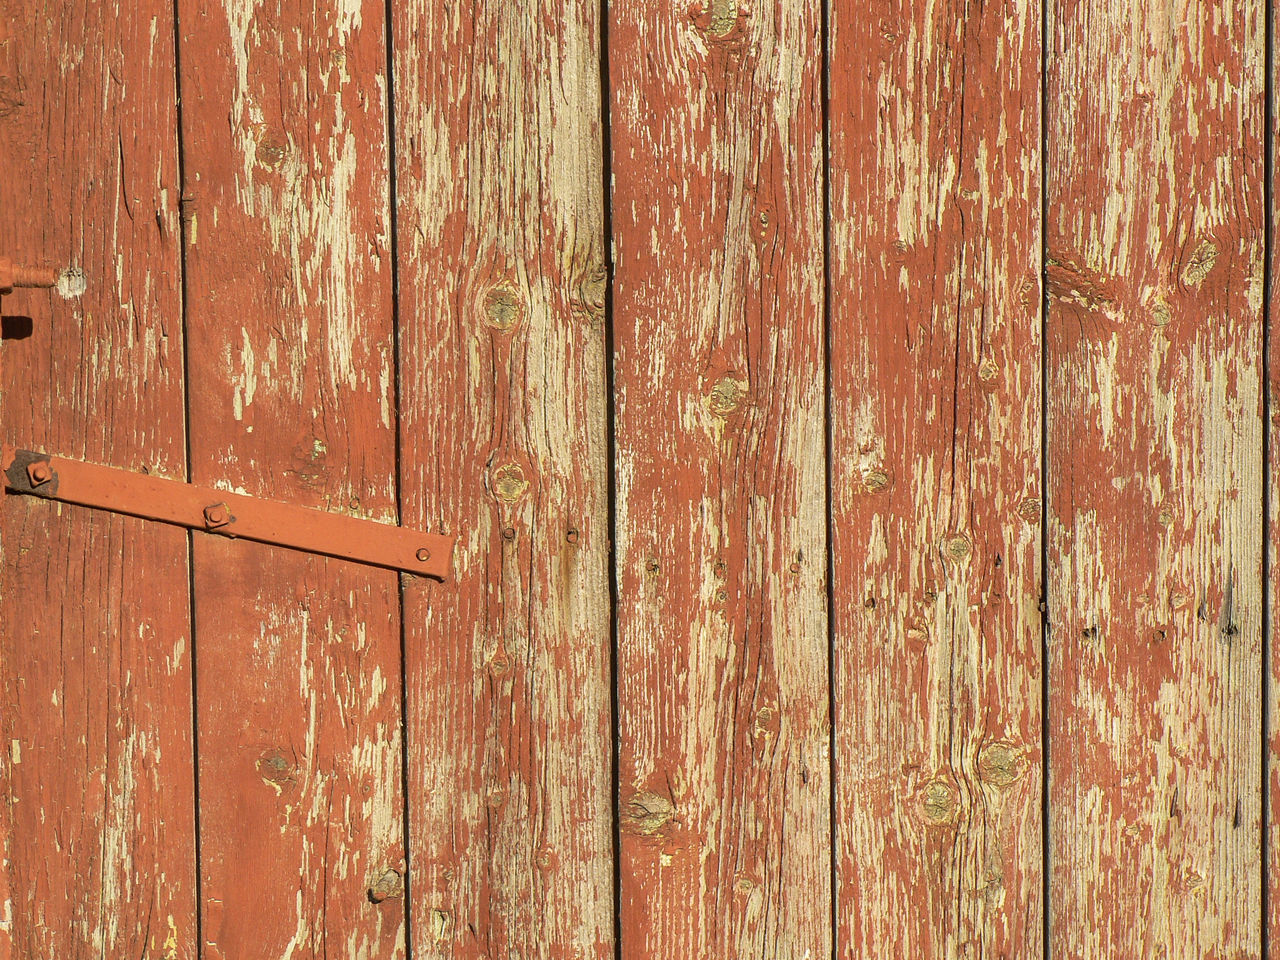 wood - material, door, backgrounds, textured, brown, no people, full frame, outdoors, day, close-up, hinge, architecture, nature